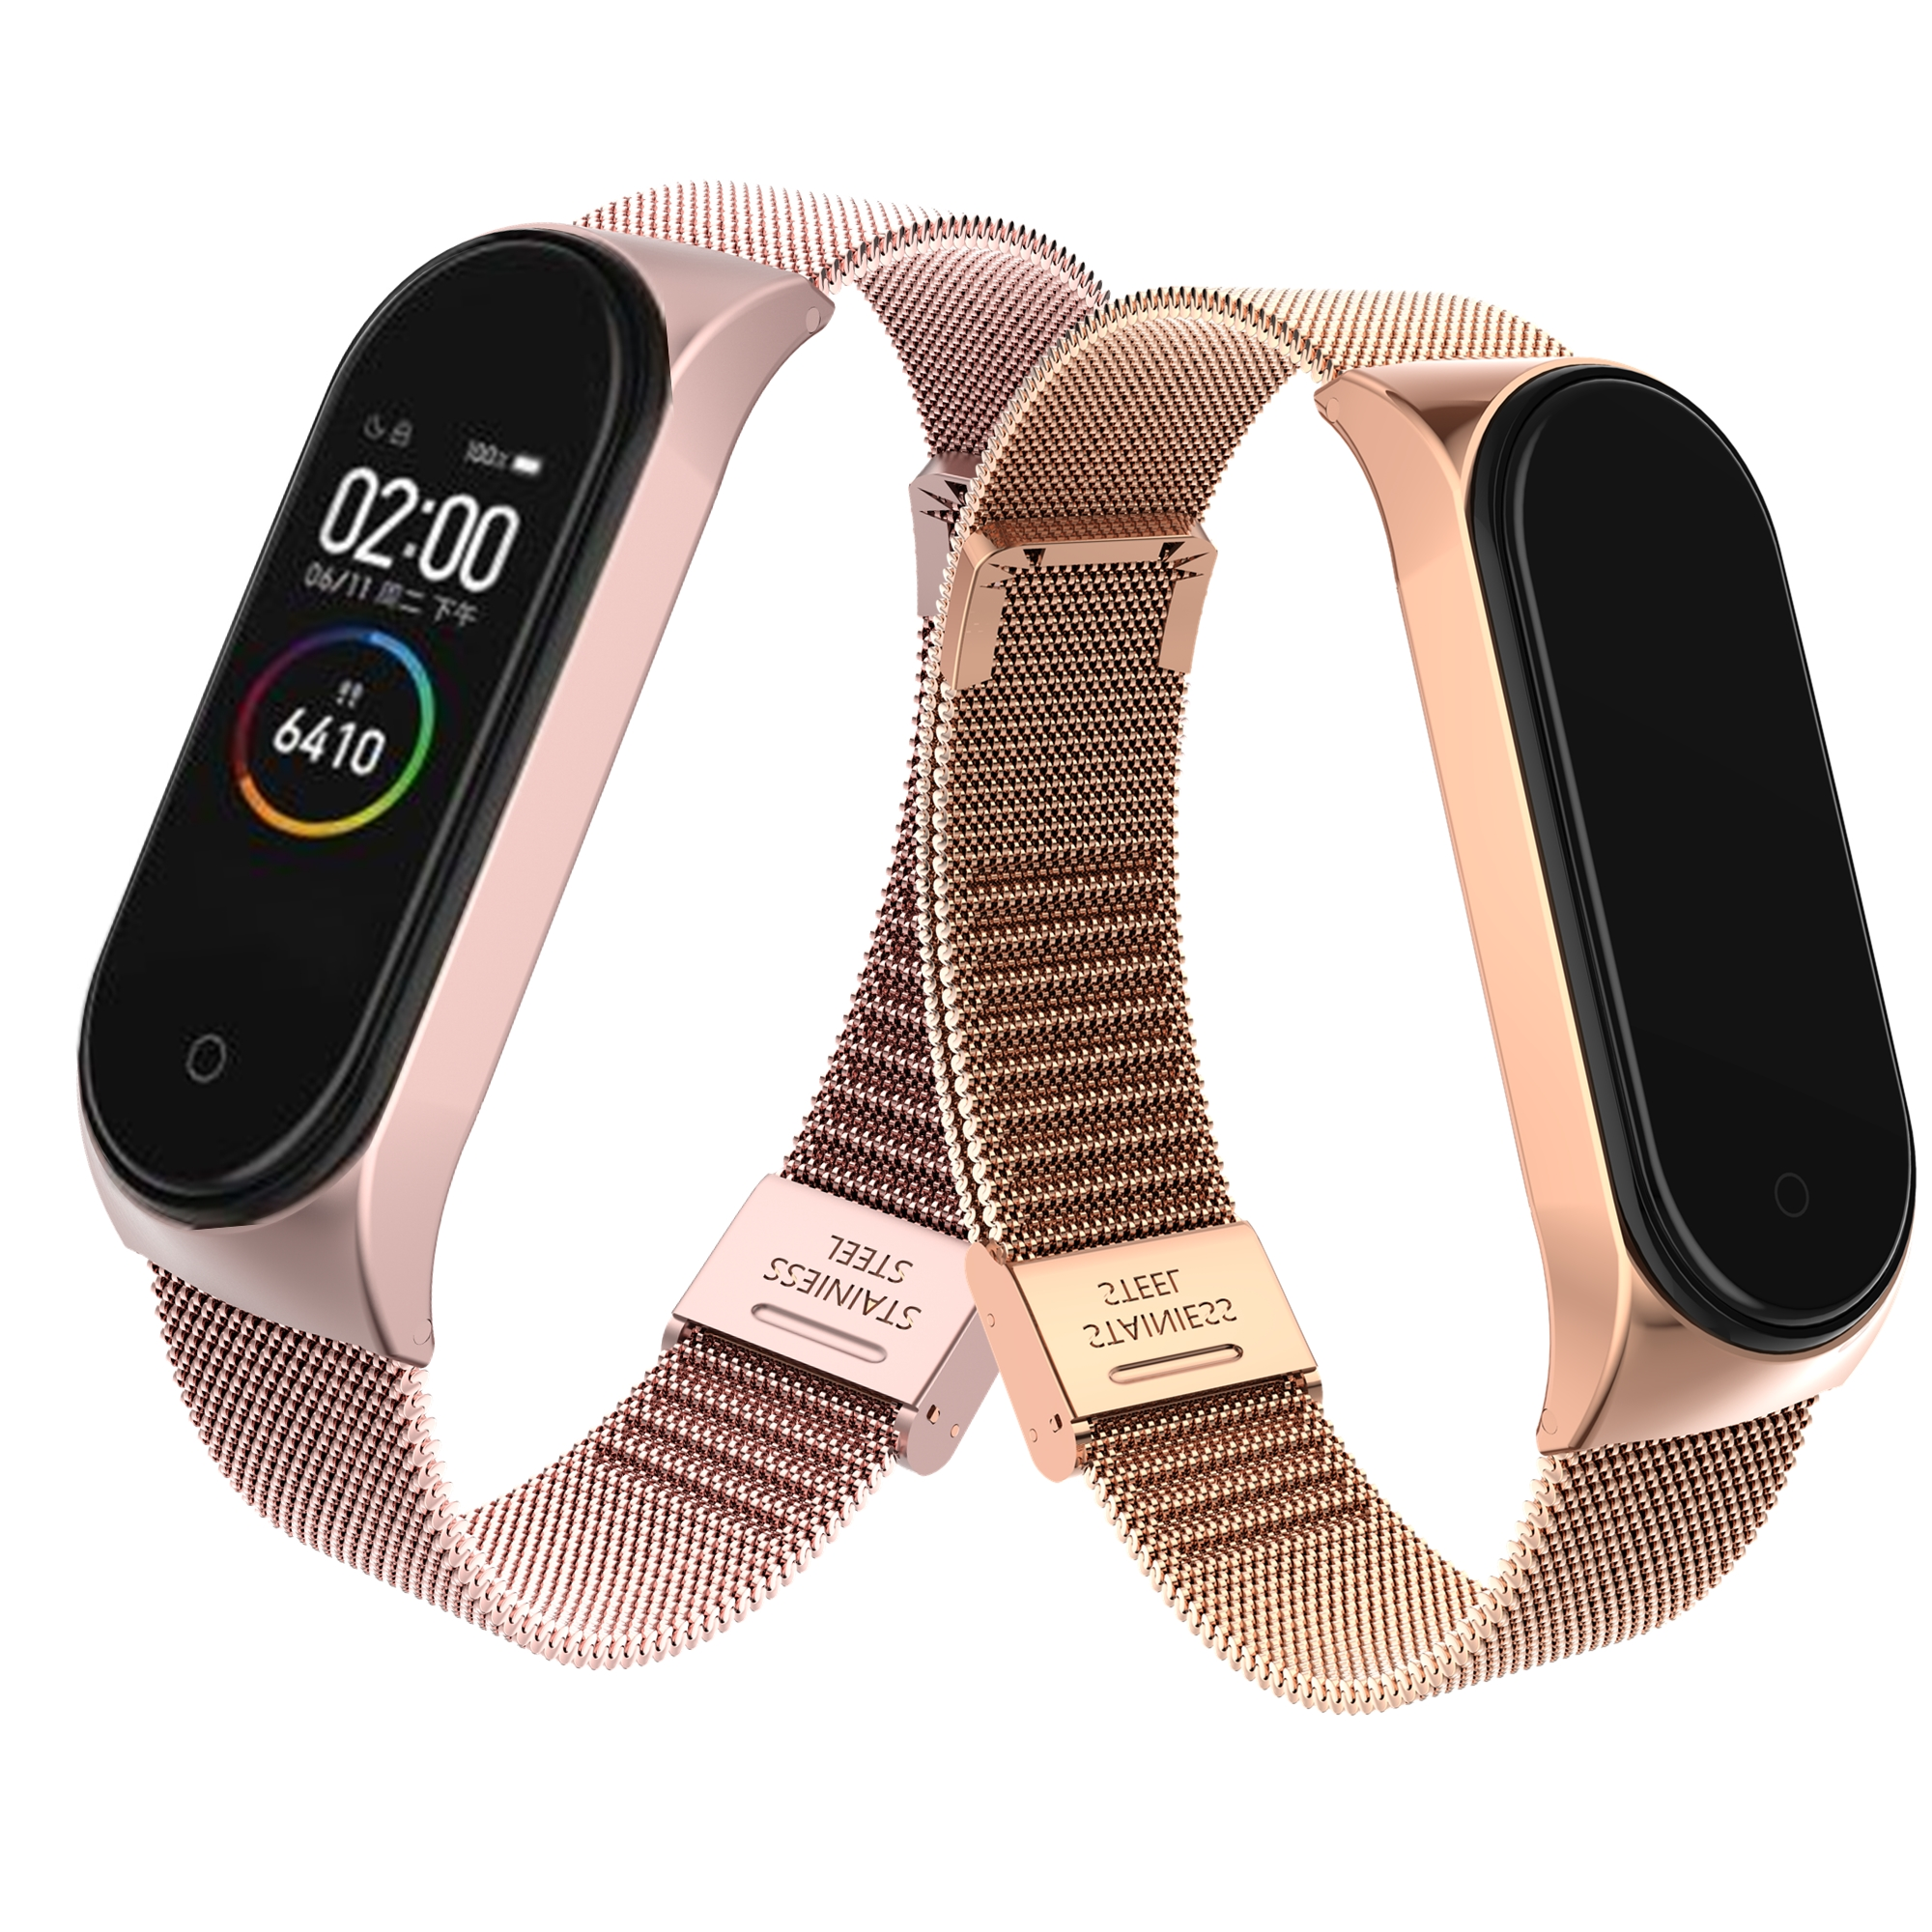 Mi Band 4 Strap Bracelet Wrist Metal Screwless Stainless Steel Miband 4 Wristbands Pulseira Miband4 For Xiaomi Mi Band 4 Strap